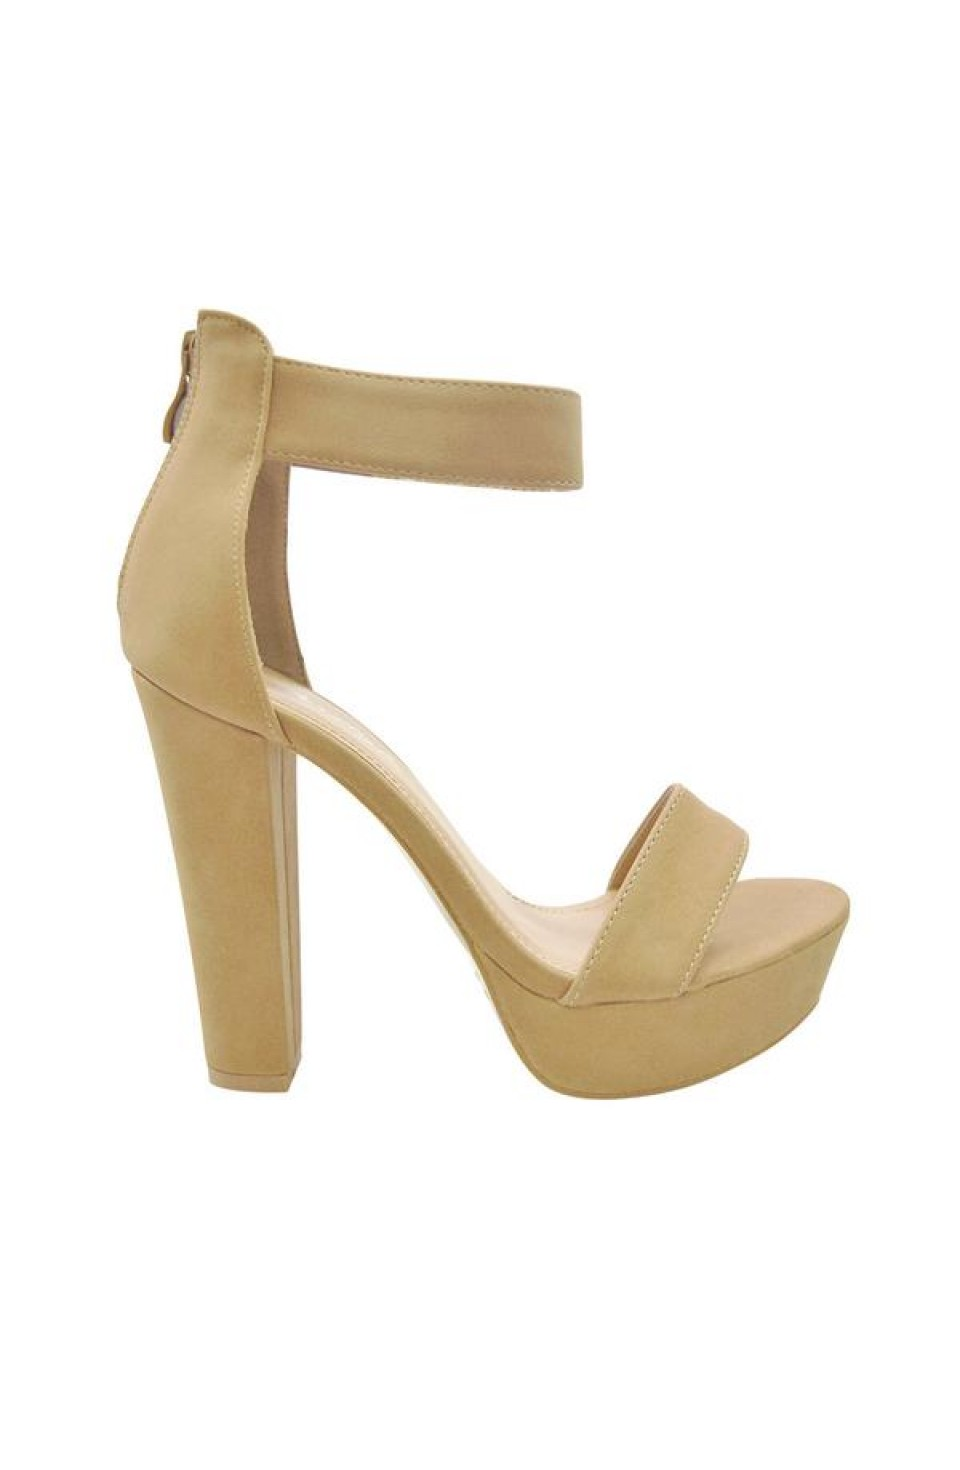 Women's Nude Manmade Rooola 4-inch Heeled Sandal with Sueded Upper